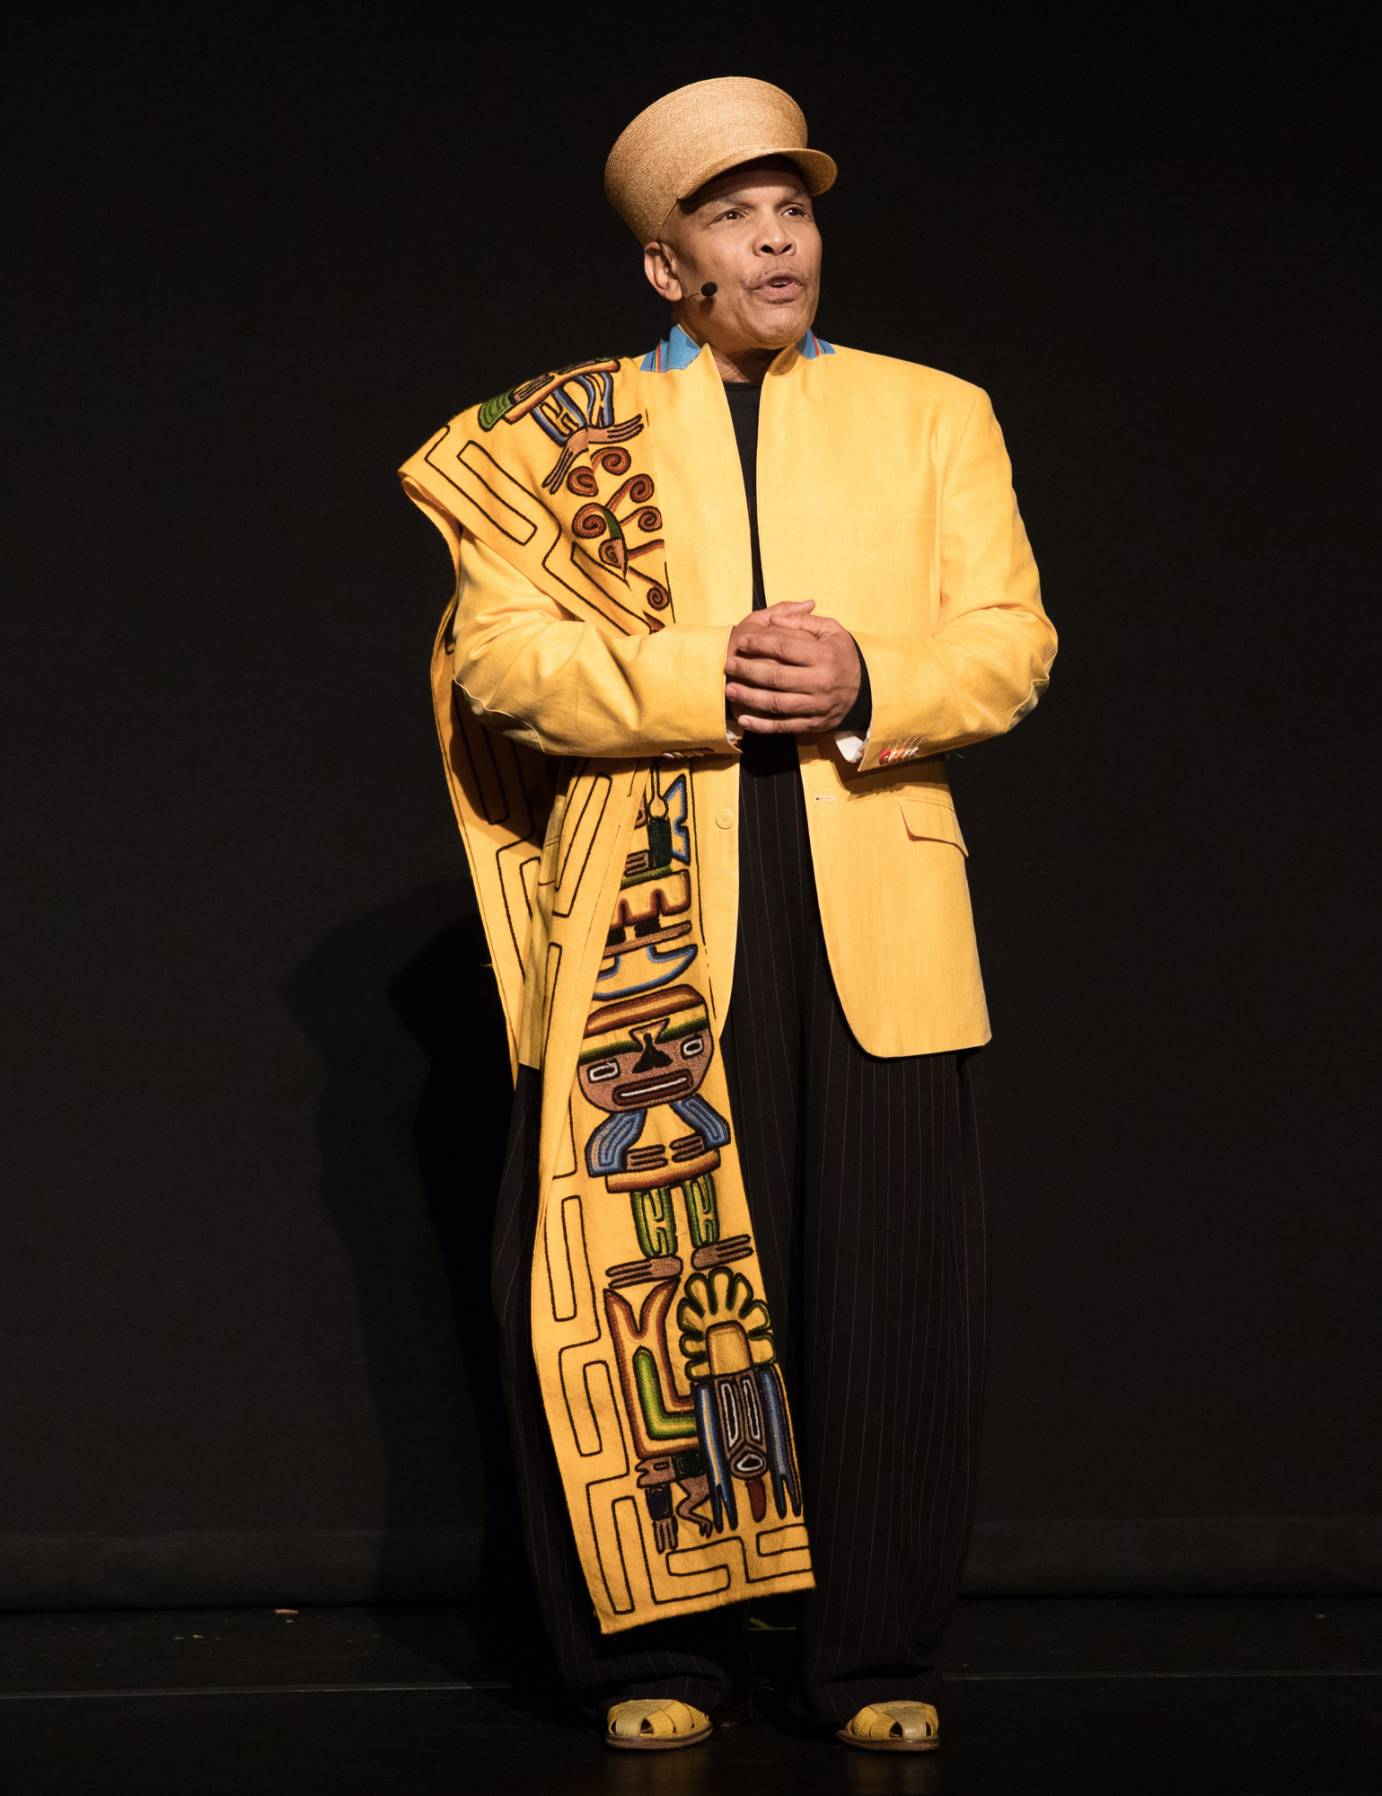 Abdel Salaam in a hat and beautiful yellow embroidered coat